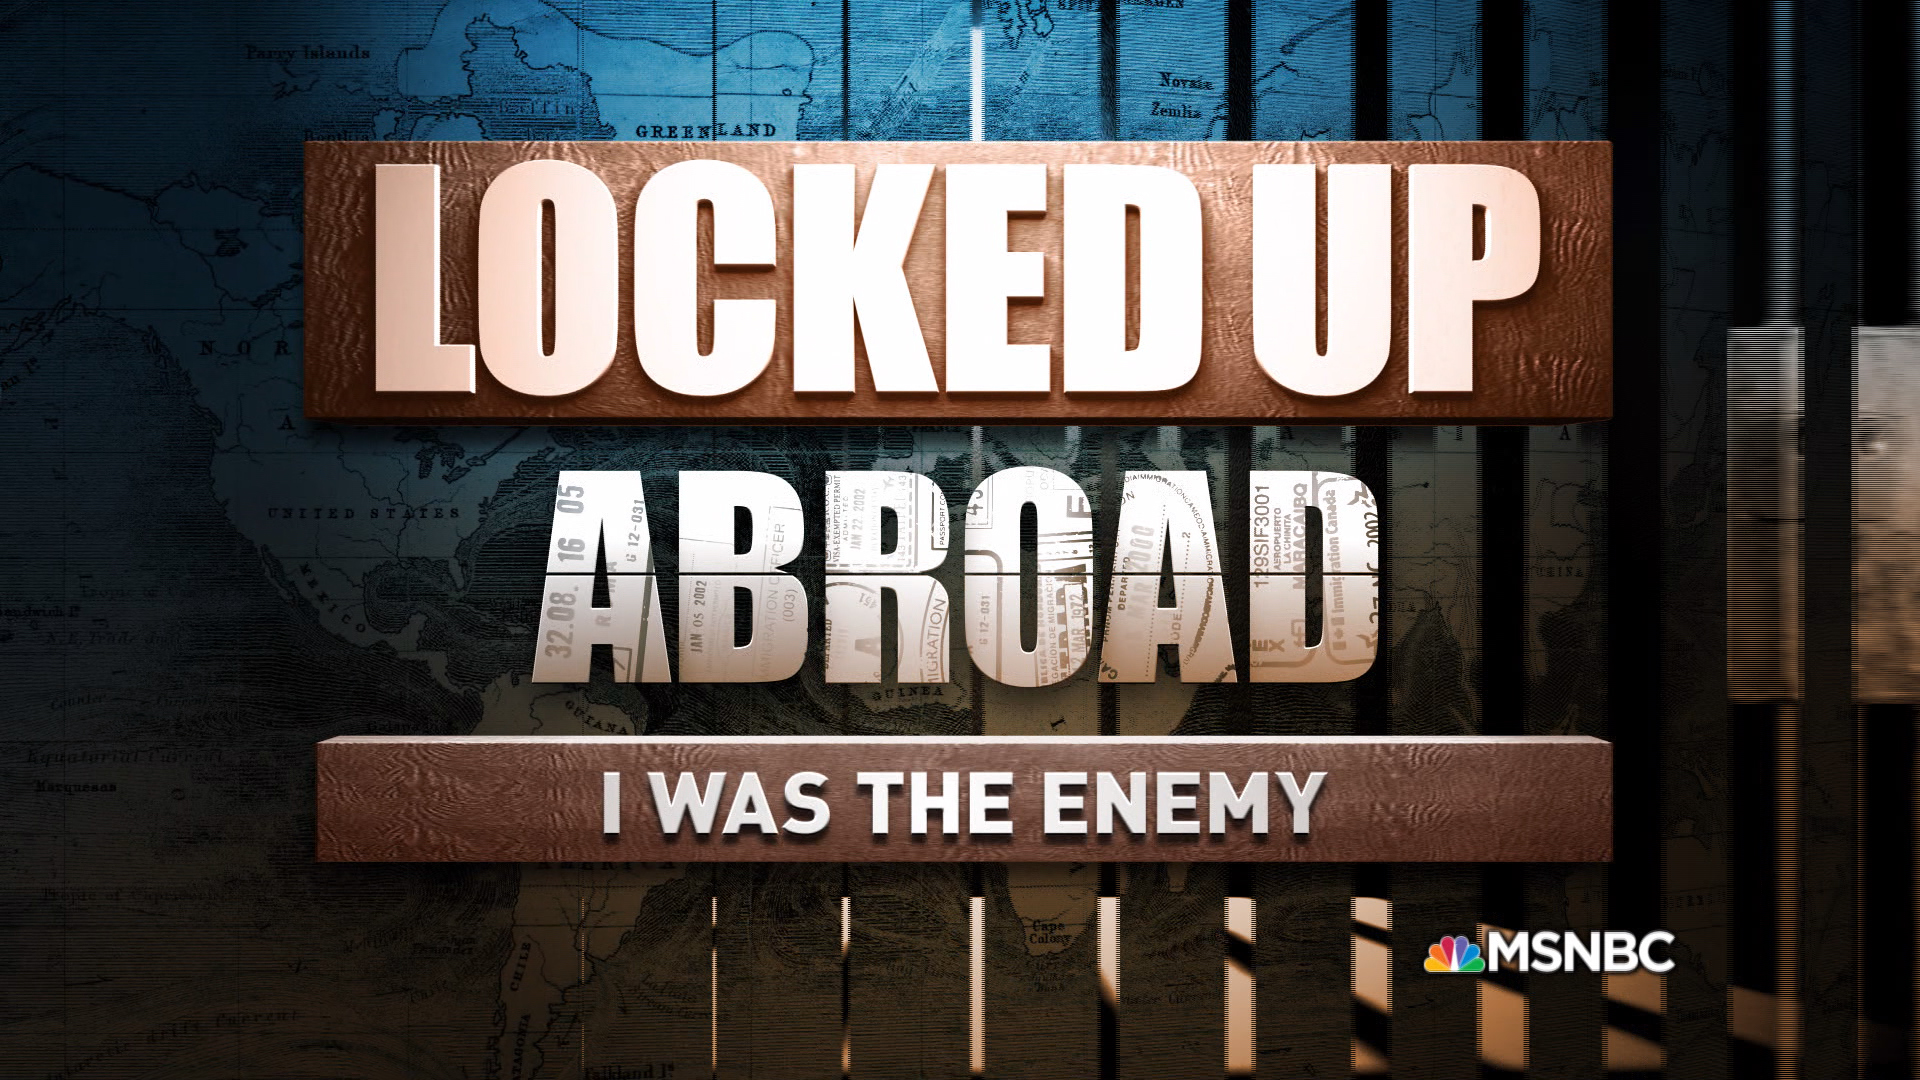 Locked Up Abroad: I Was The Enemy